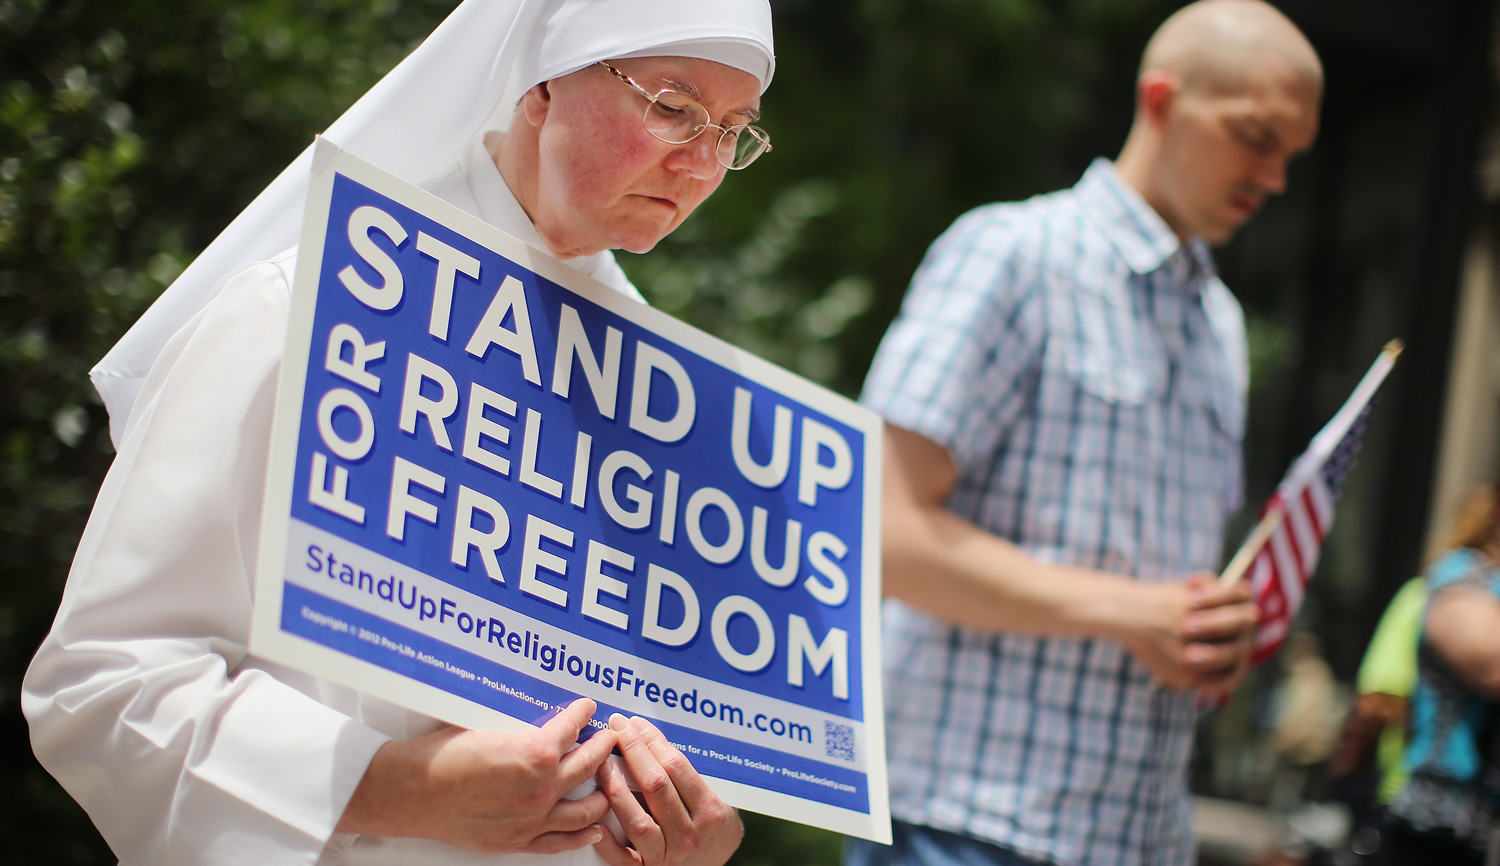 A nun at a rally with other supporters of religious freedom in Chicago, 2014. Scott Olson/Getty Images.